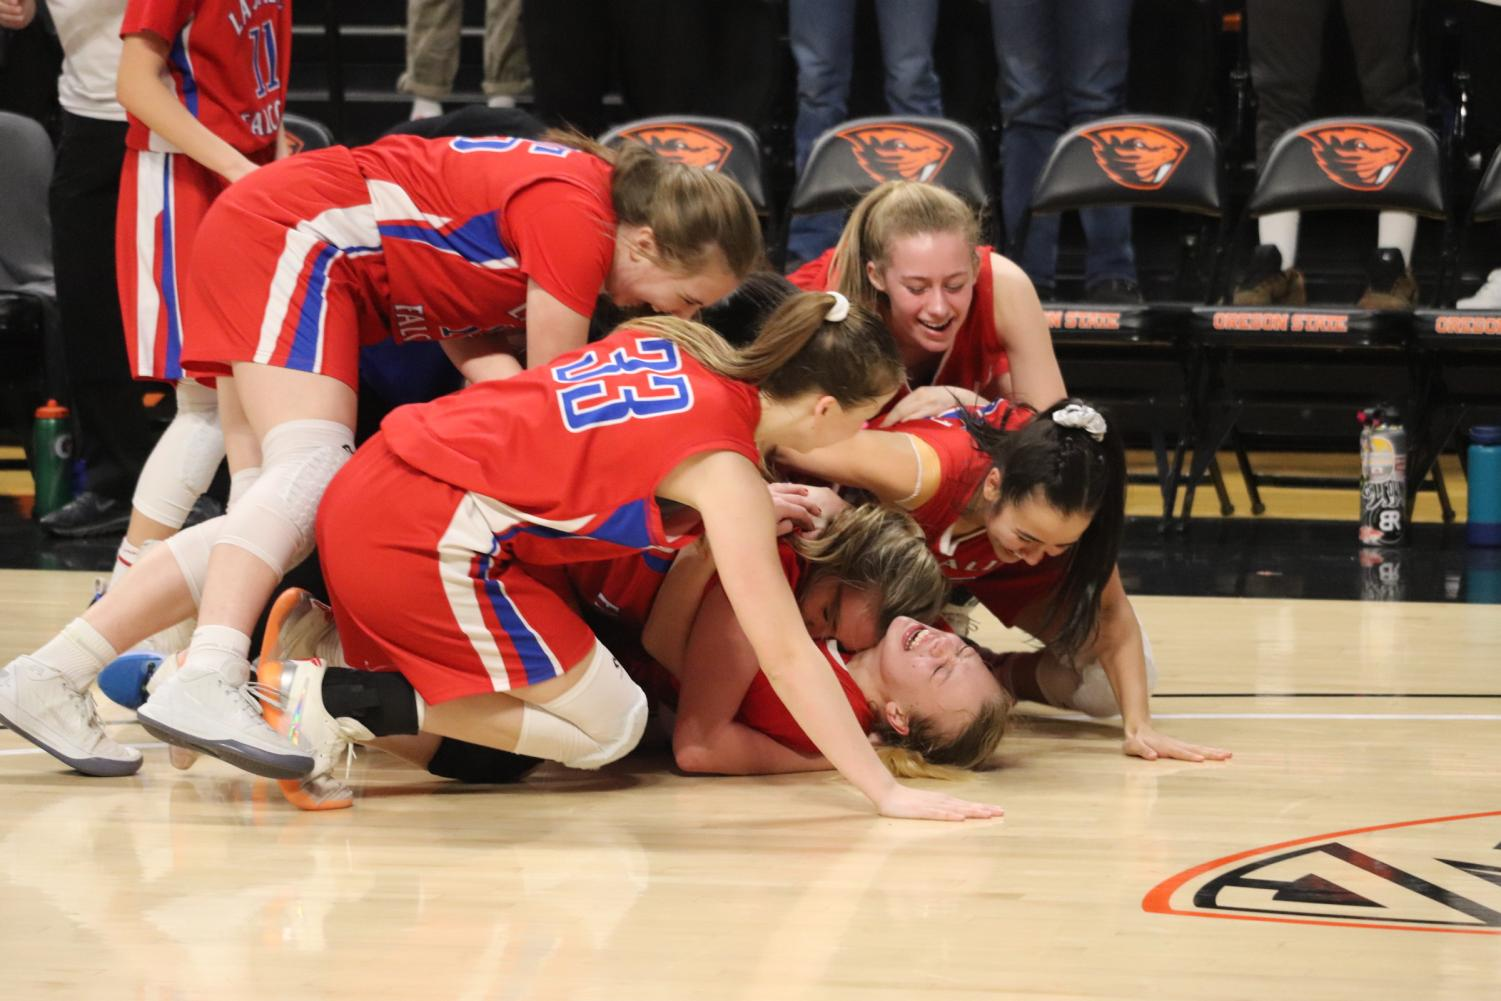 The+girls+dog+pile+on+Niebergall%2C+celebrating+the+victory.